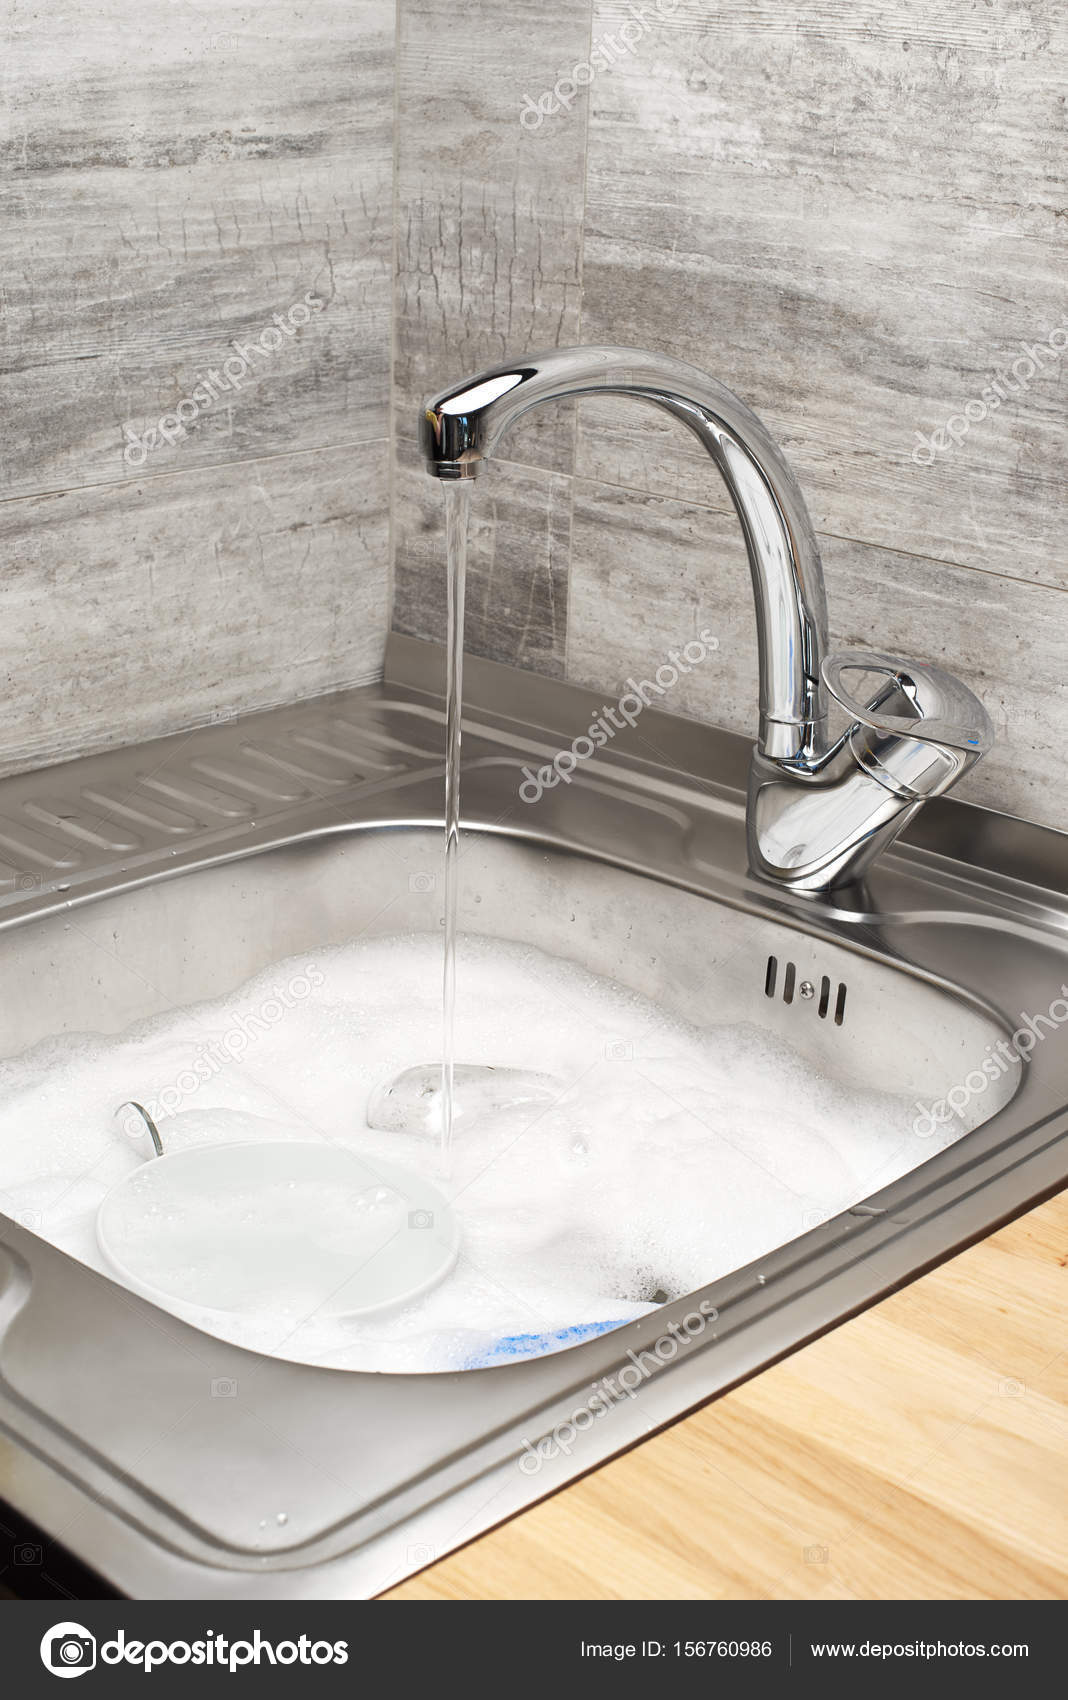 Kitchen Sink With Running Water Foam Tableware And Blue Sponge Stock Photo C Intelwond 156760986